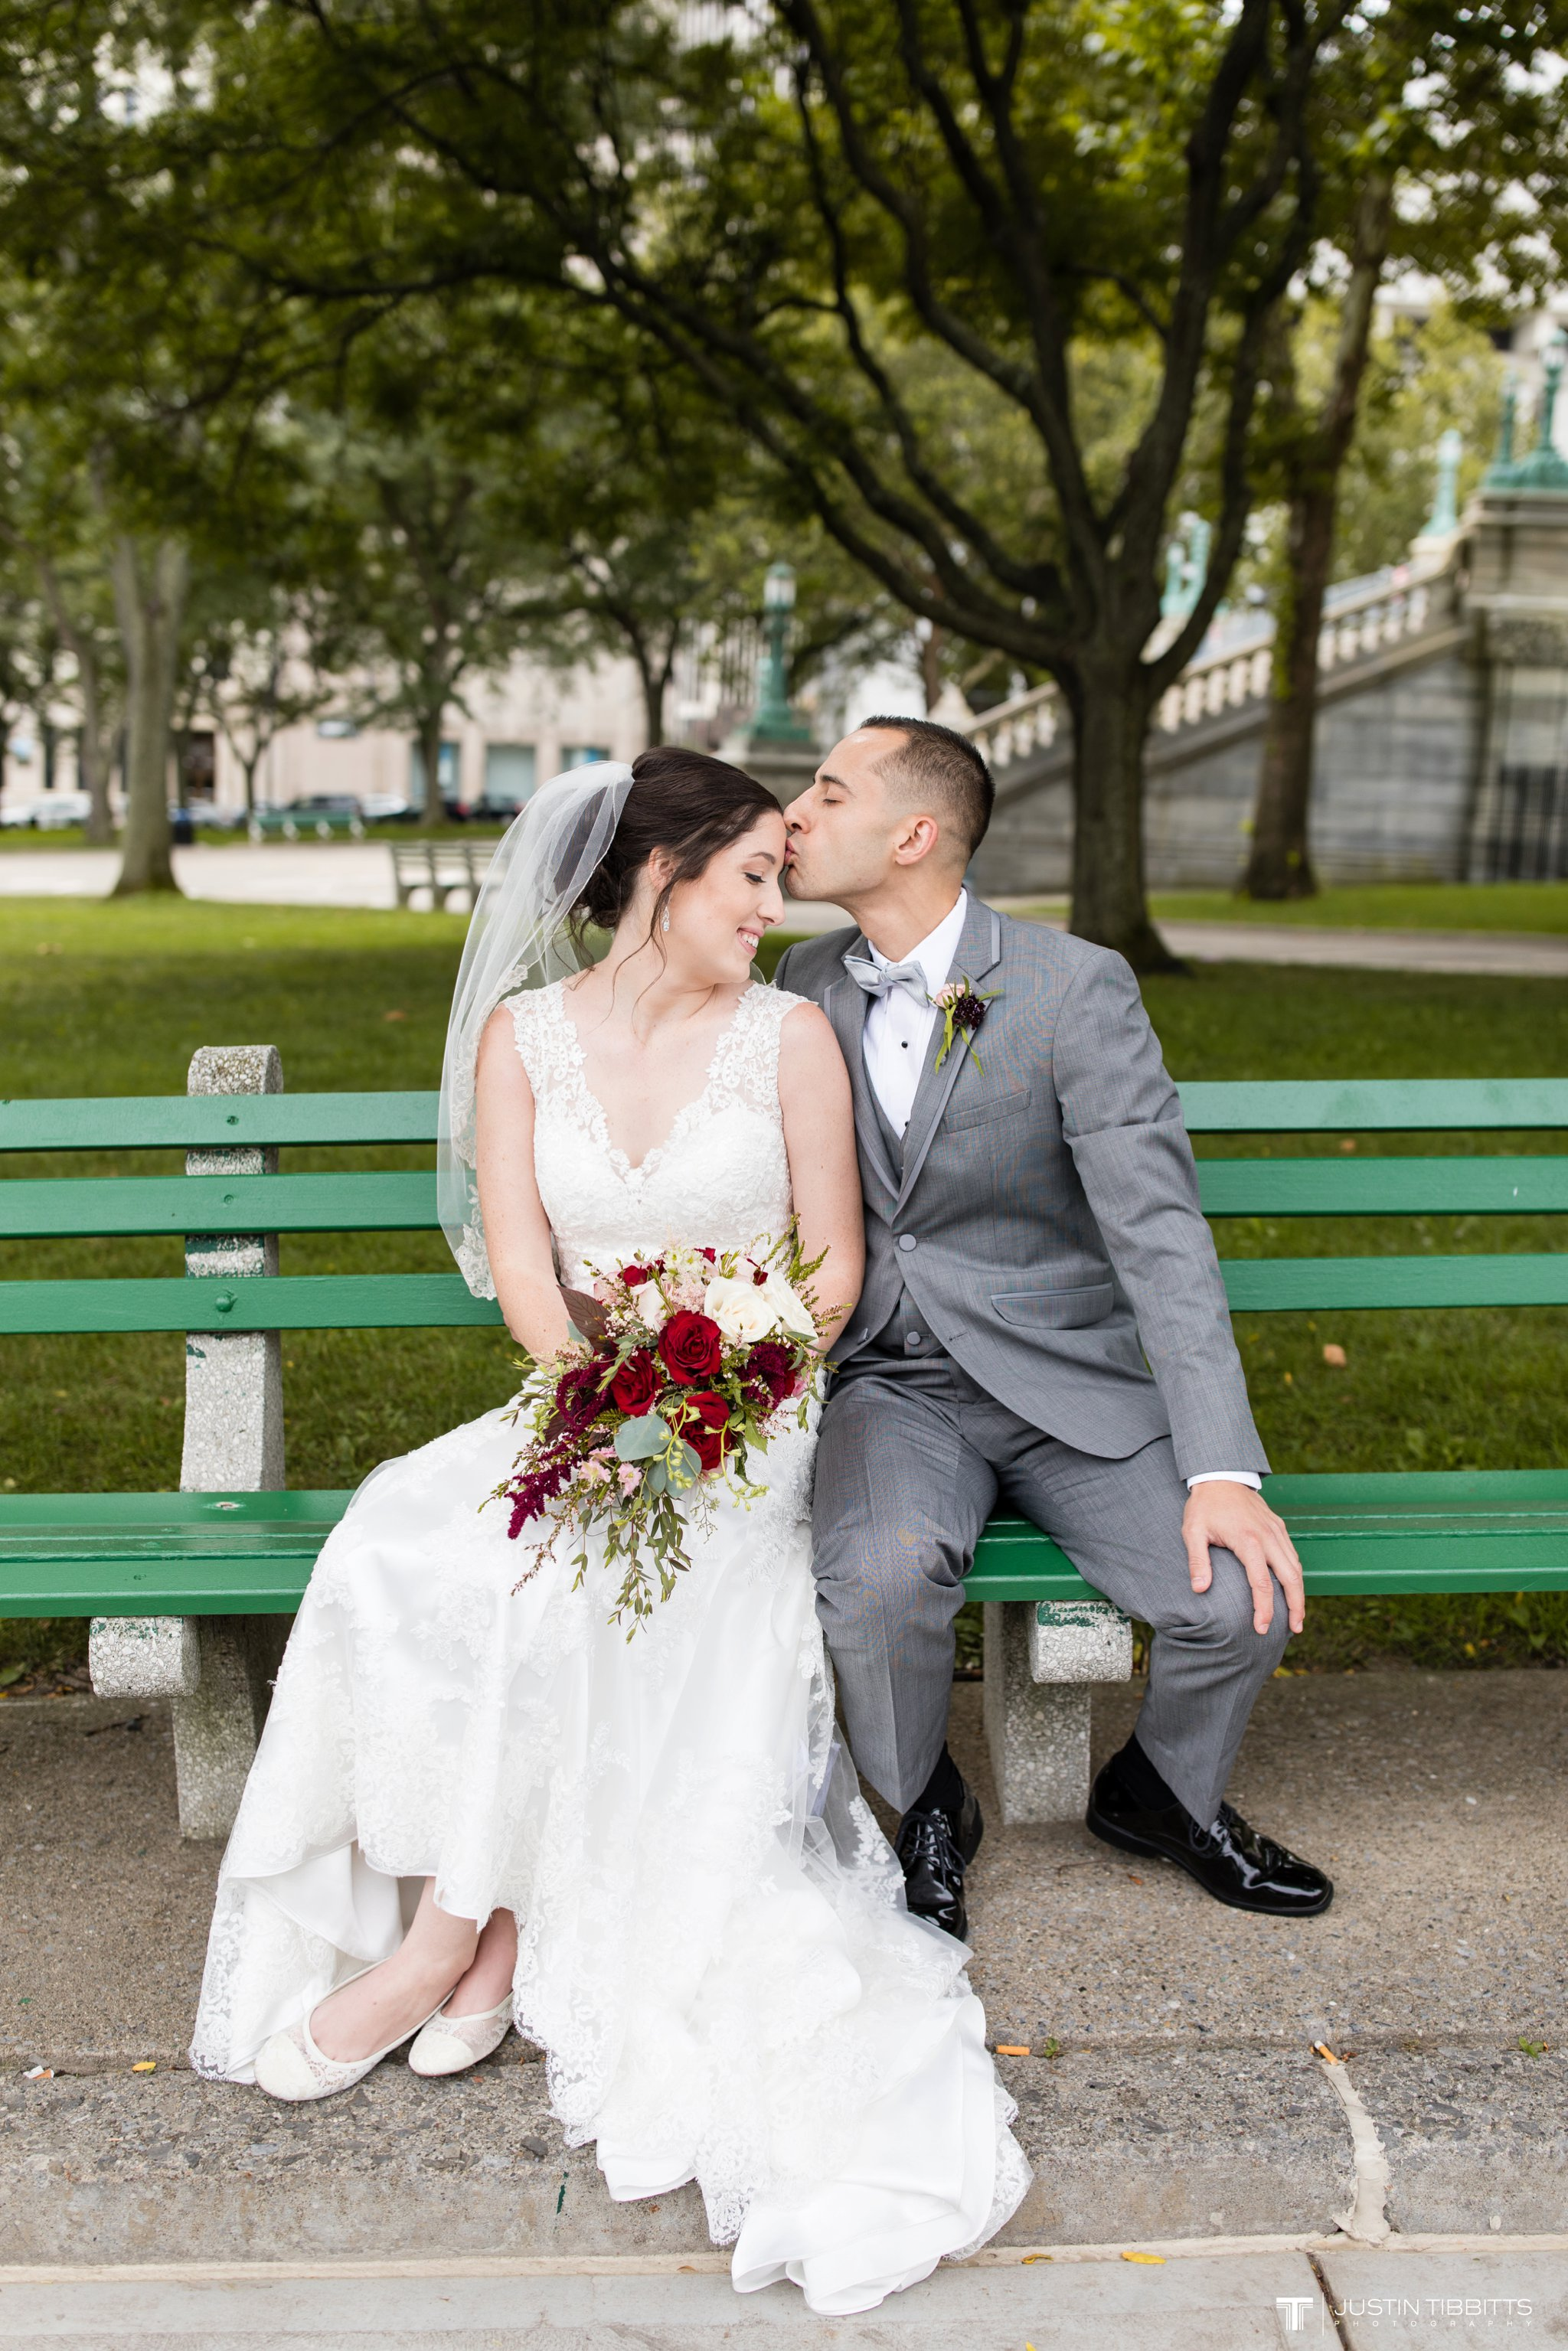 Malozzi's Wedding Photos with Mark and Danielle by Justin Tibbitts Photography_0054